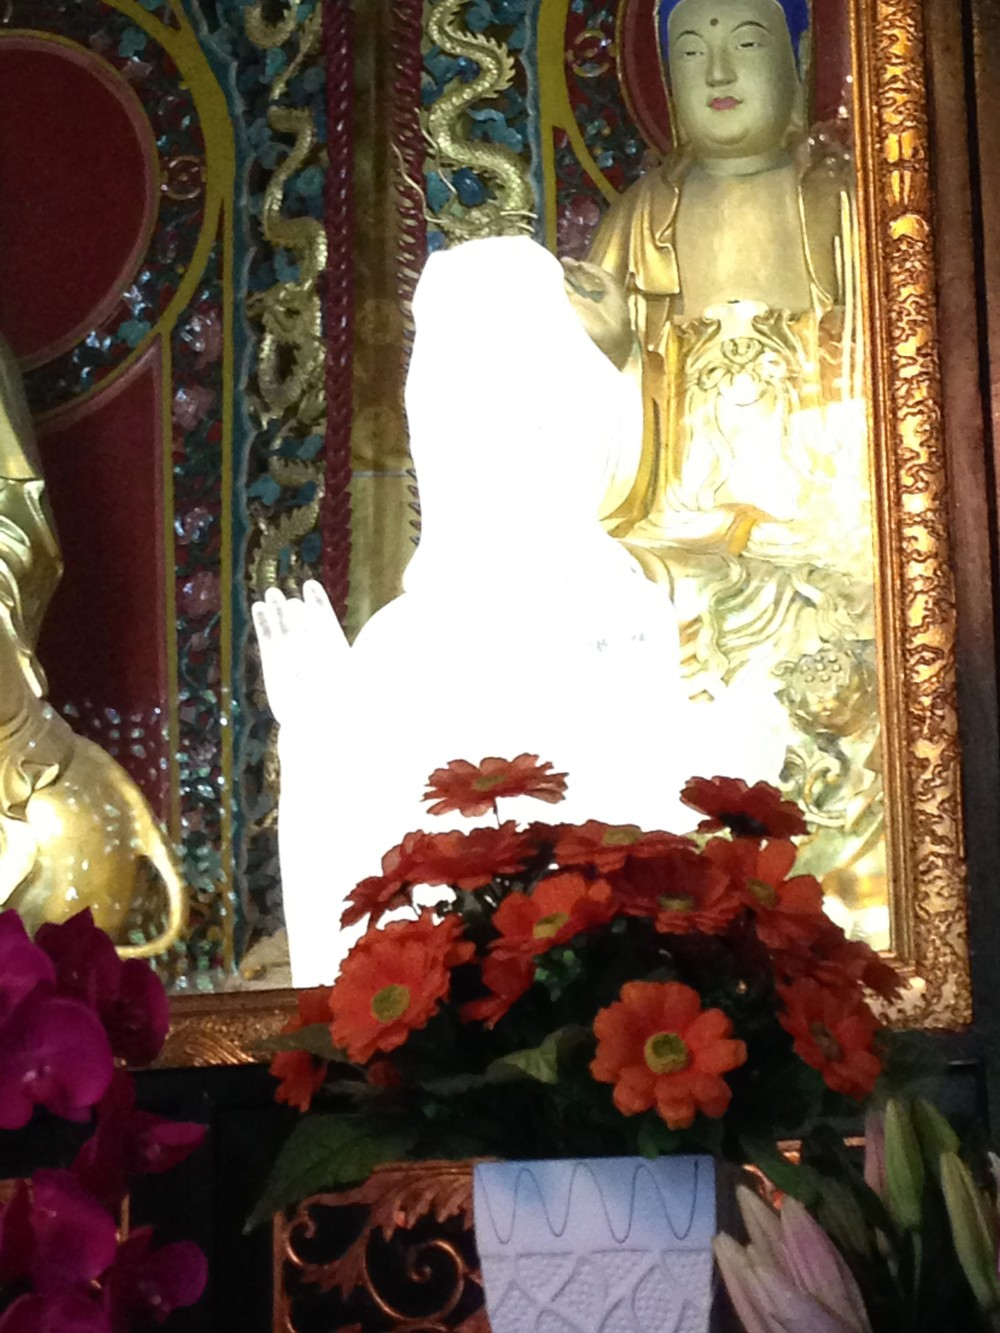 Yeshe took this photo of a crystal statue of Kuan Yin at the Manjushri temple in Chengdu, Sichuan Province.